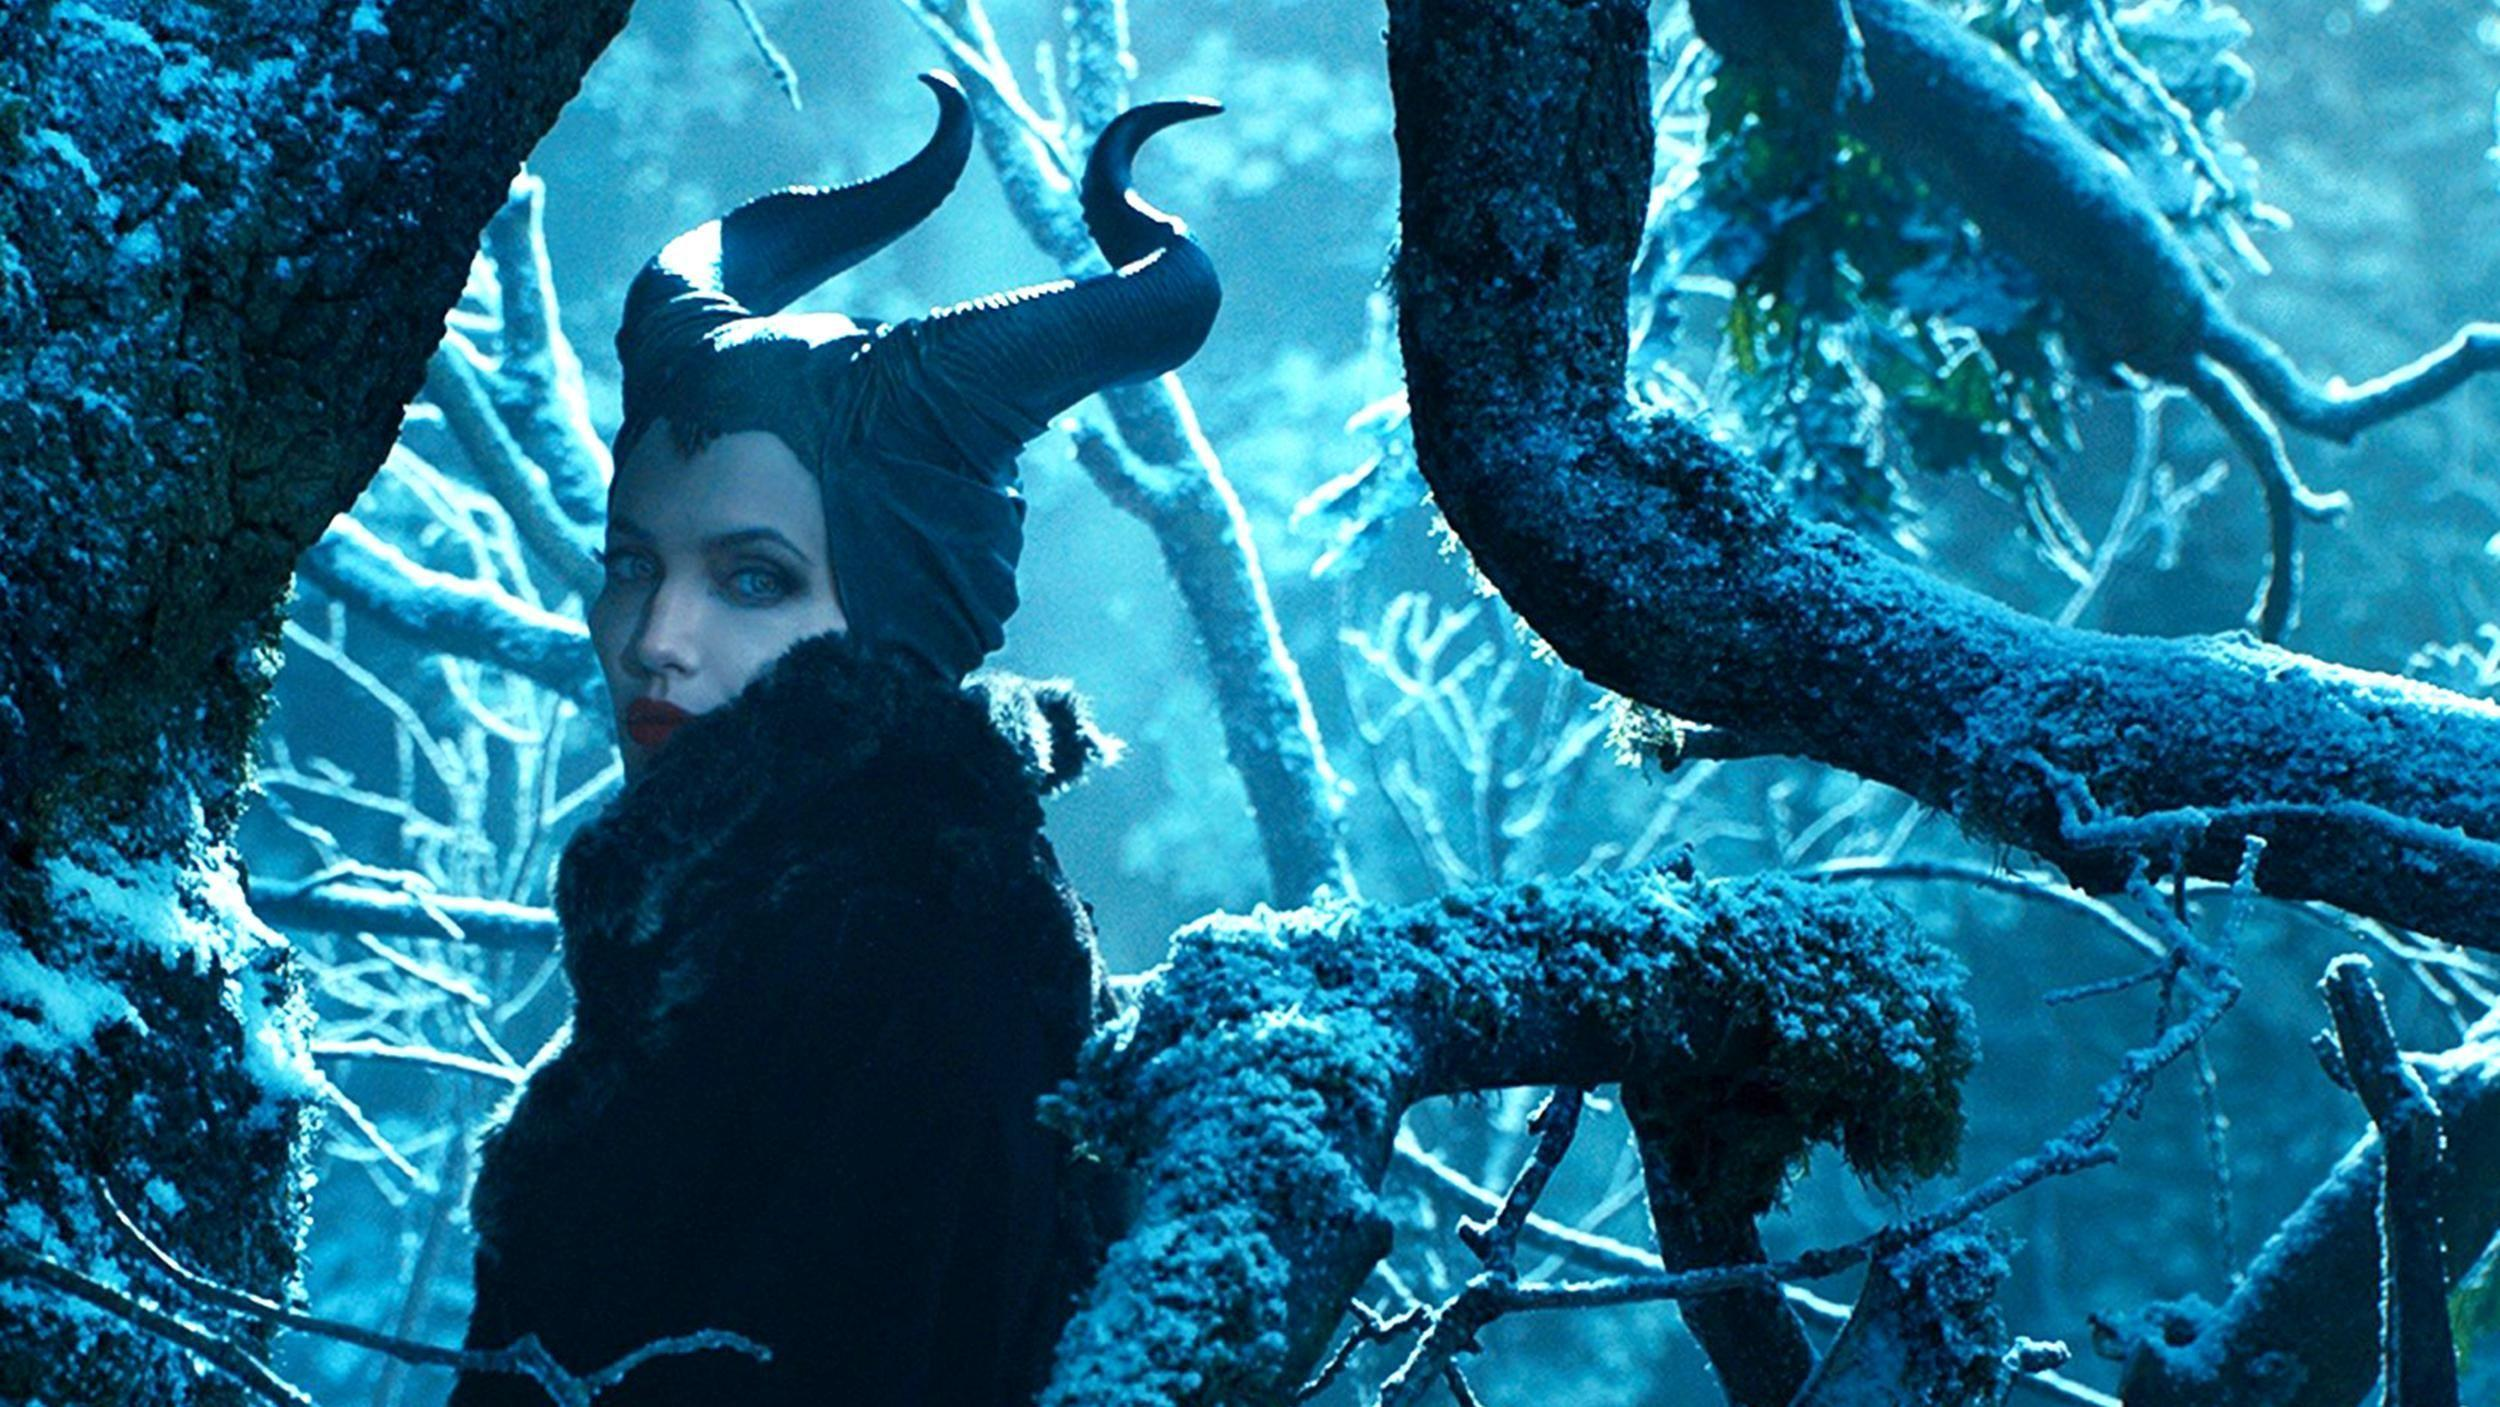 Maleficent Wallpapers HD Download